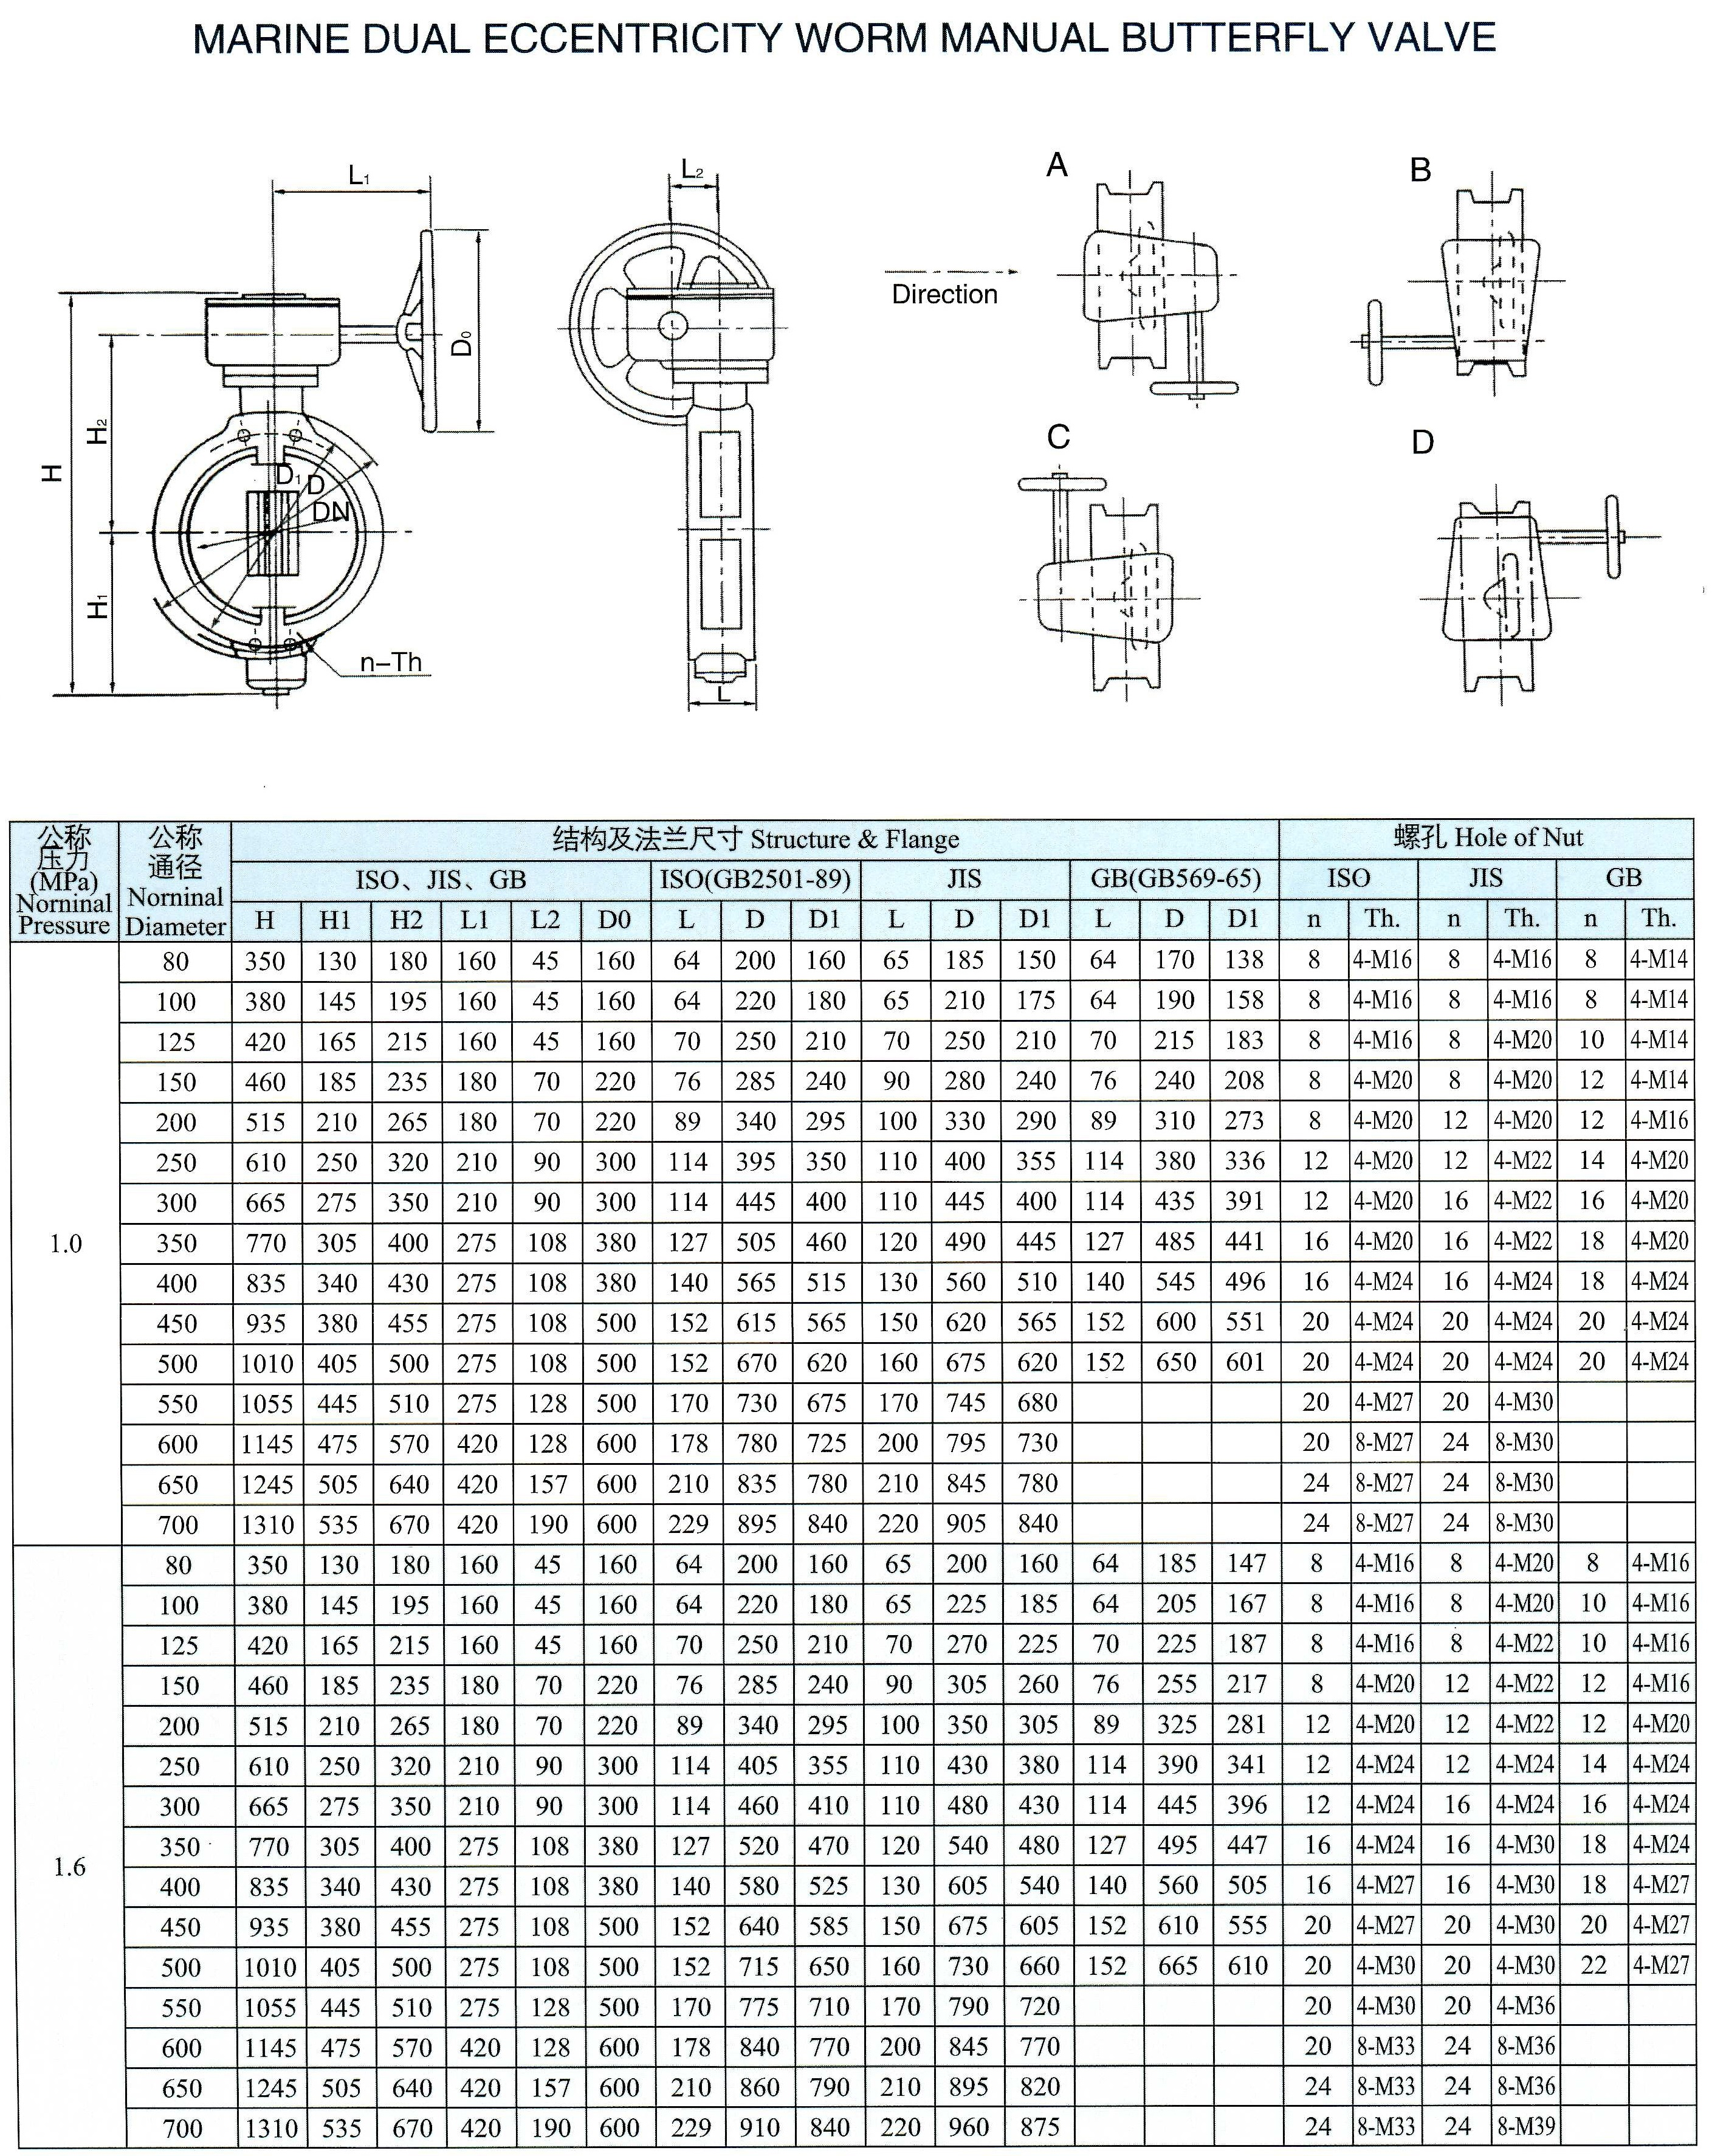 marine dual eccentricity worm manual butterfly valve (SG)